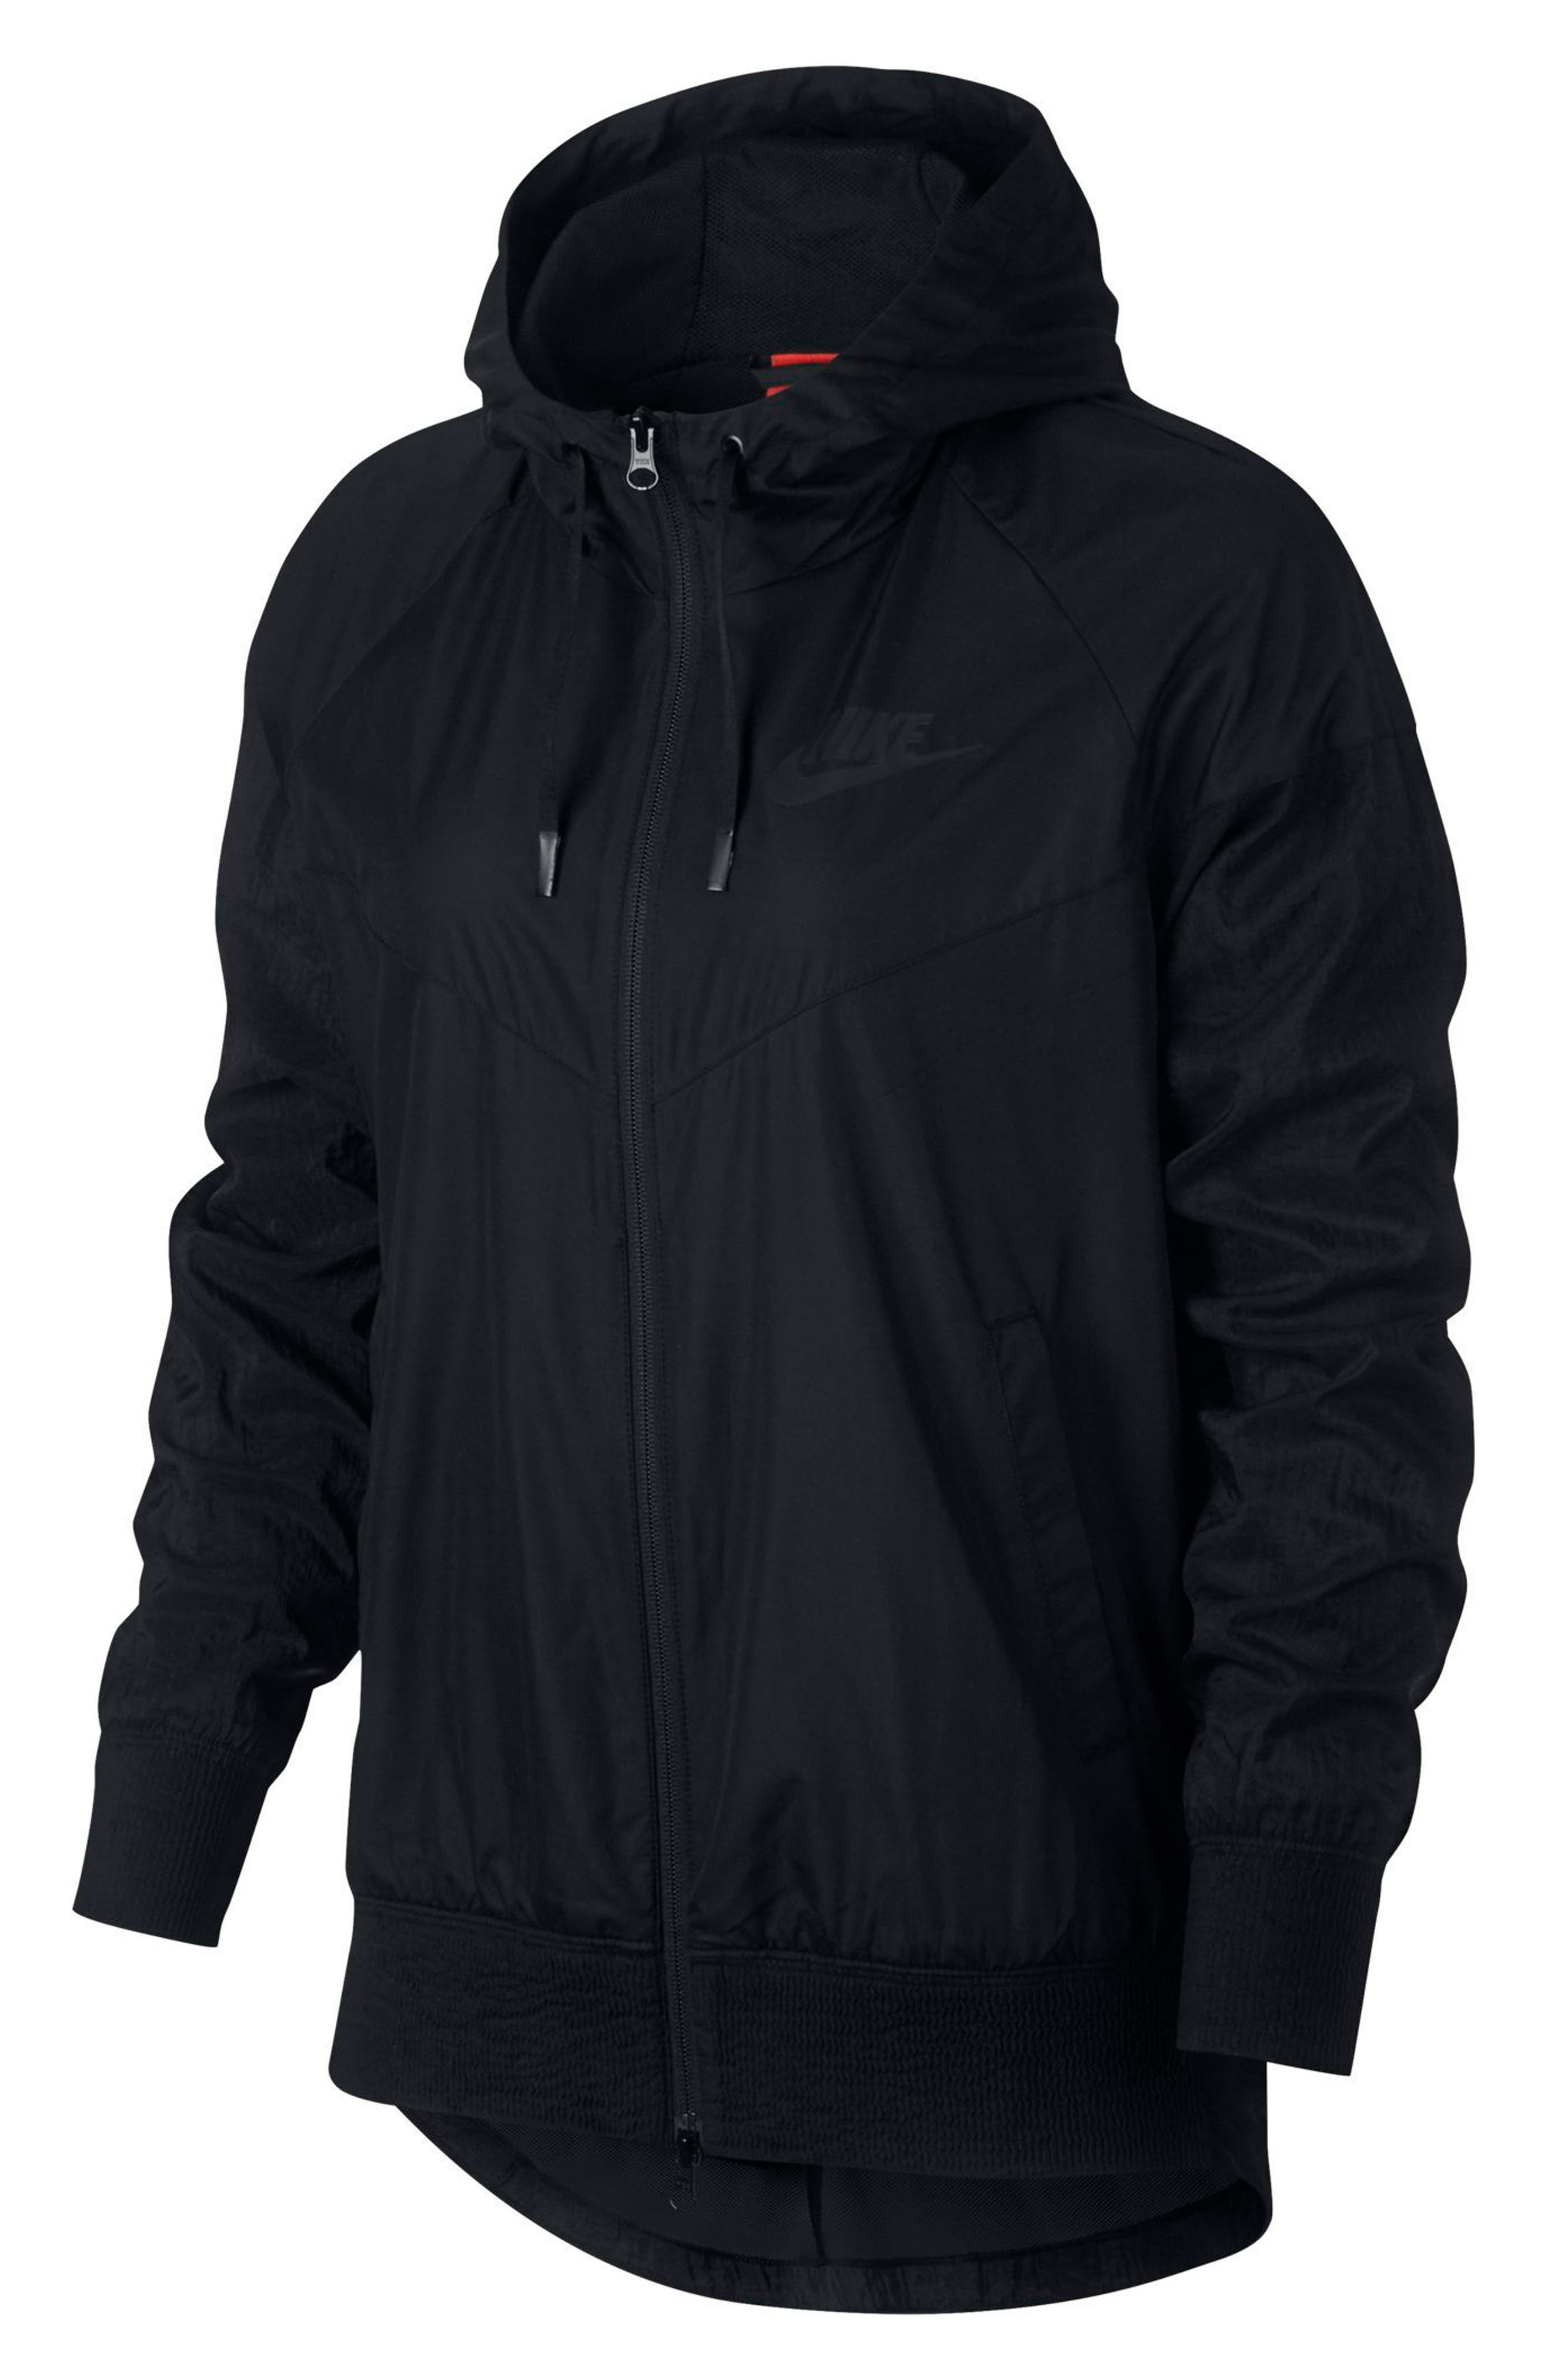 Sportswear Women's Windrunner Water Repellent Jacket by Nike